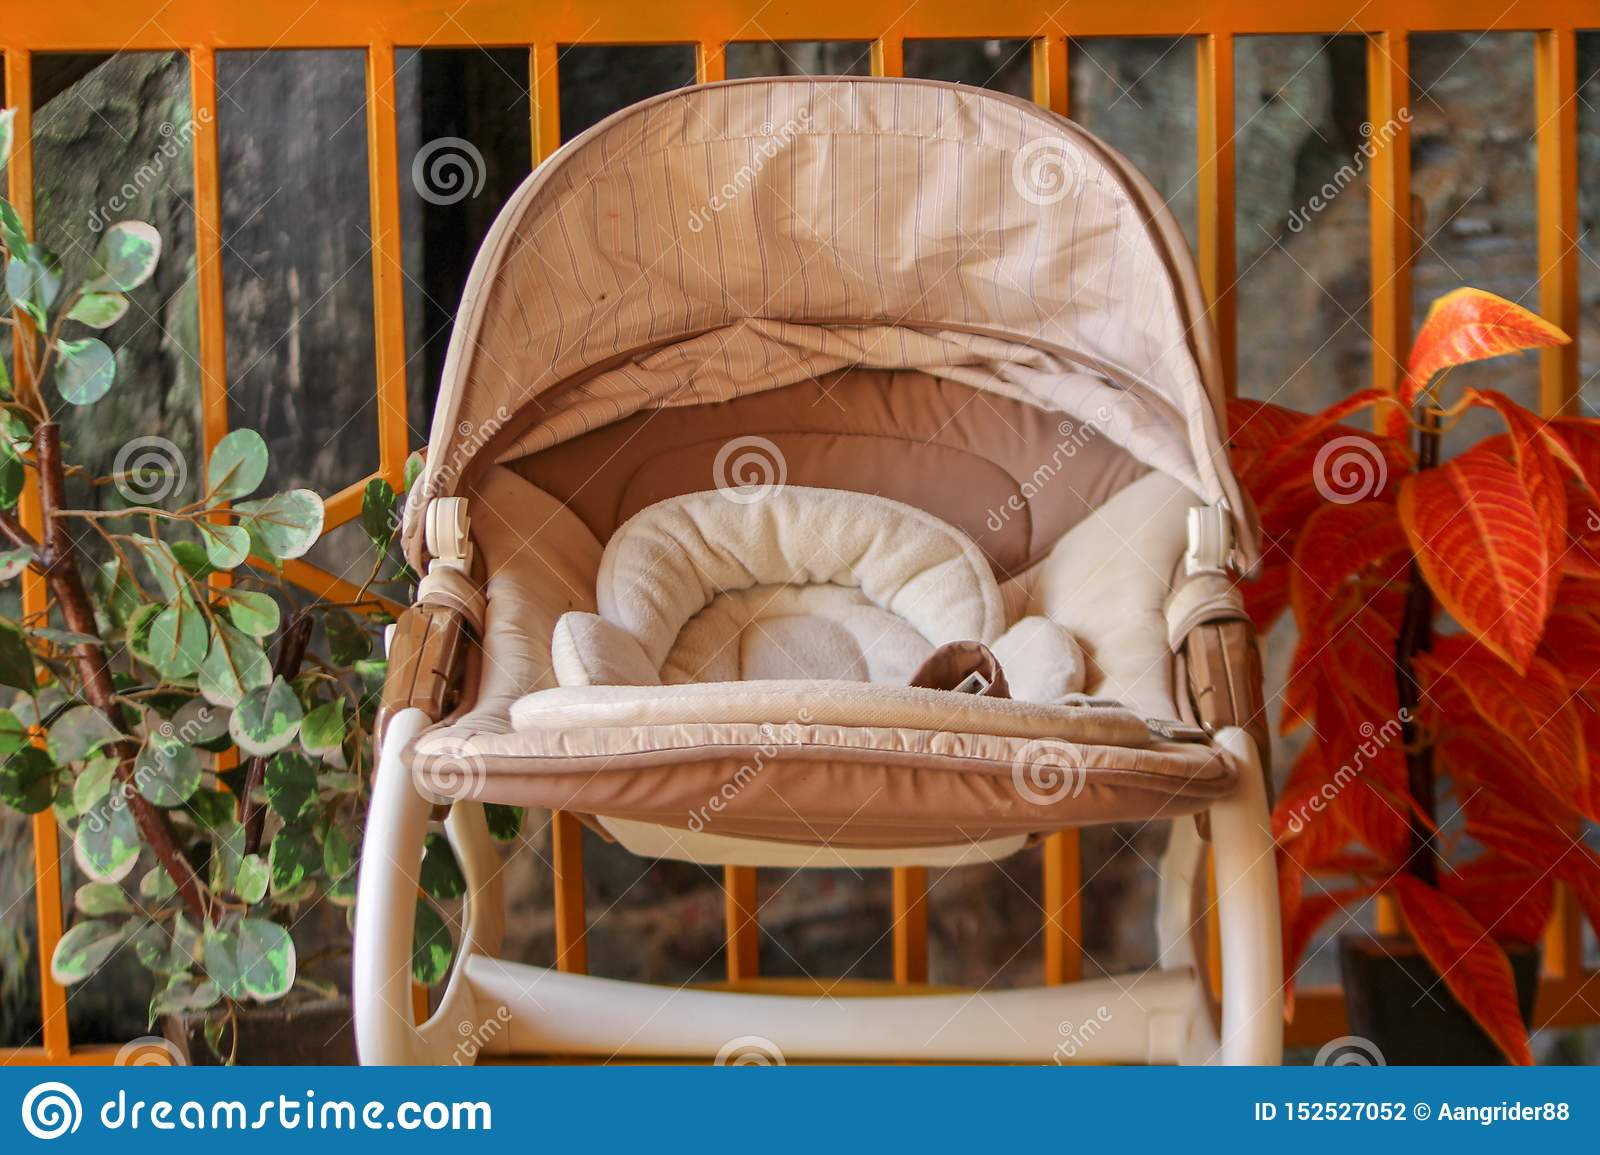 Baby carriage with a flower background in the garden